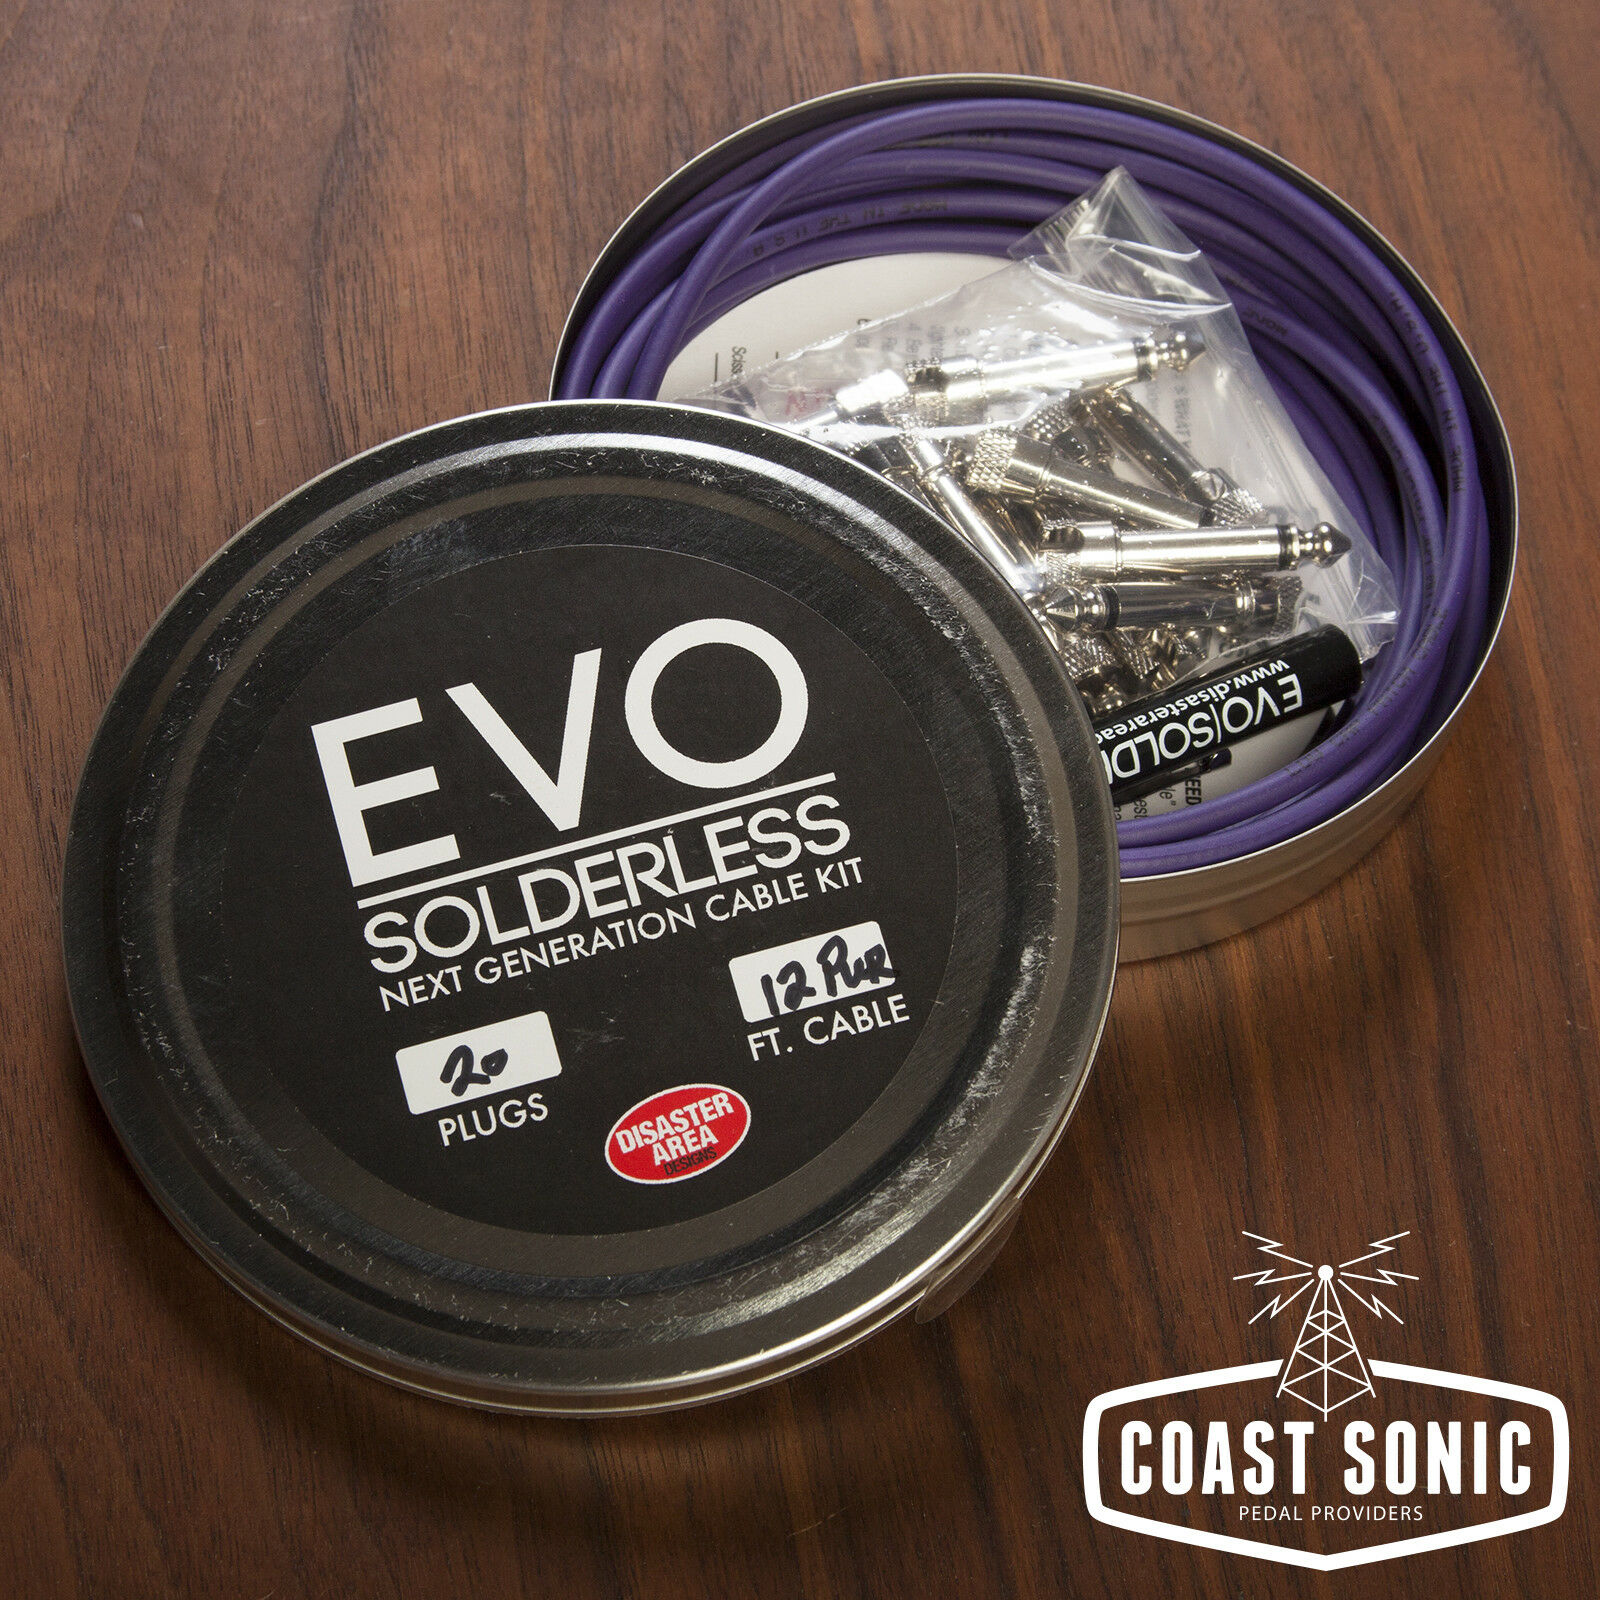 Disaster Area EVO Solderless Cable Kit 20 plugs (lila)